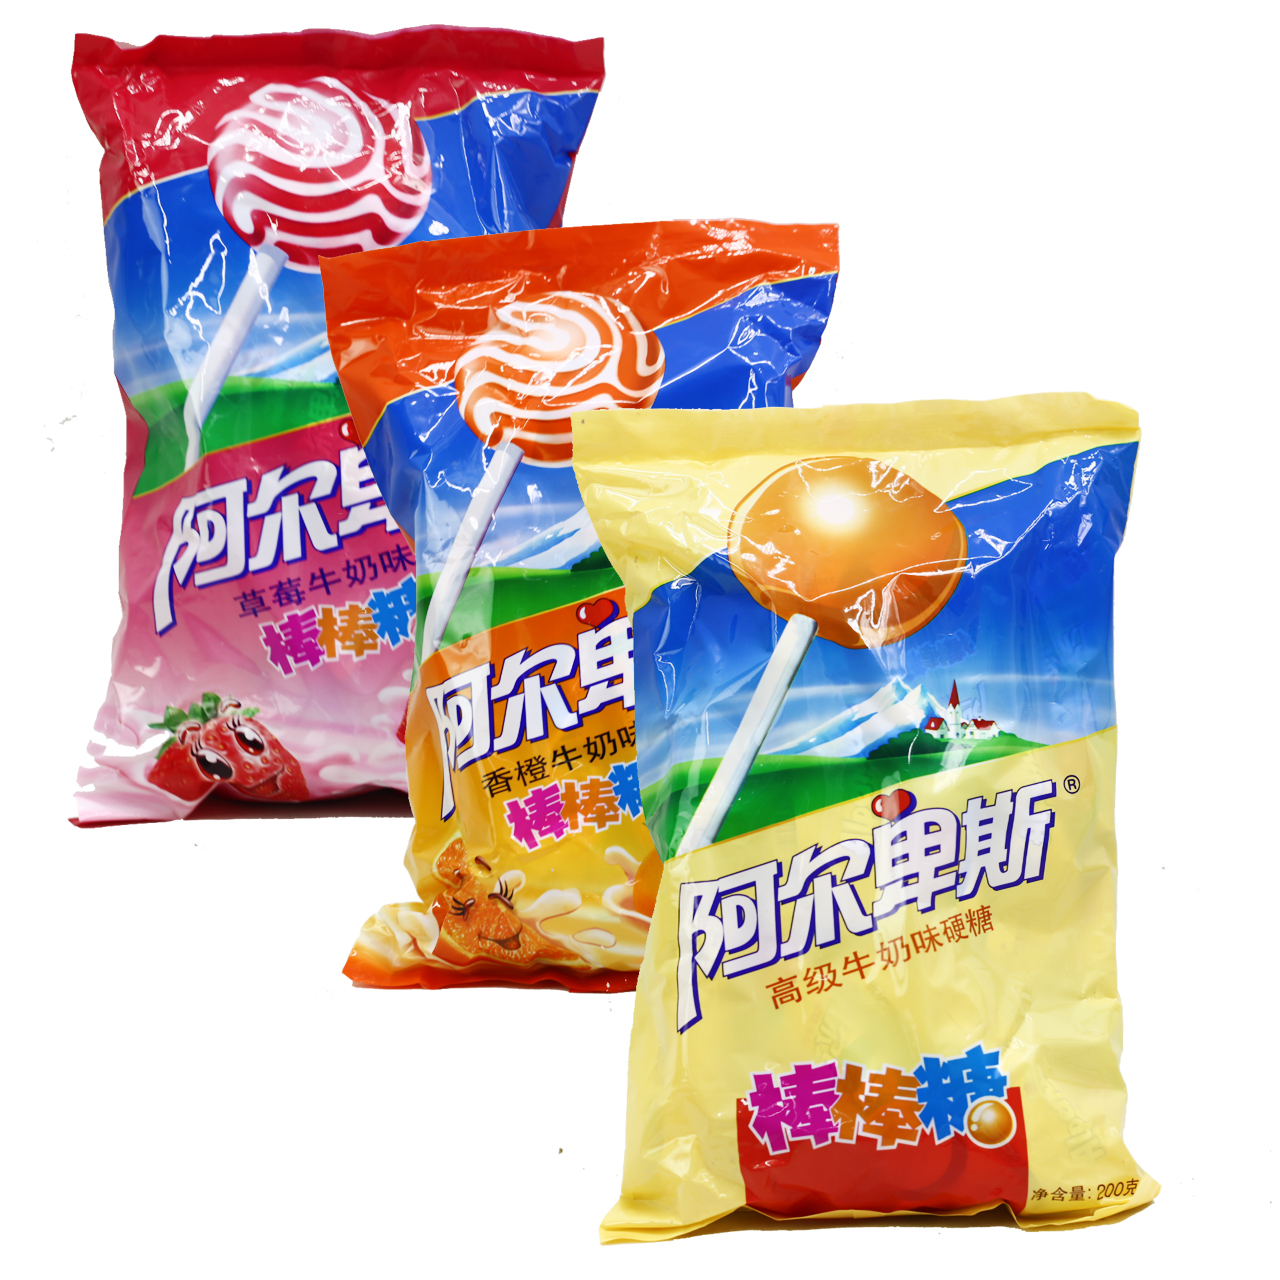 Perfetti alpine strawberry lollipop orange flavor bagged g children food delicious snacks